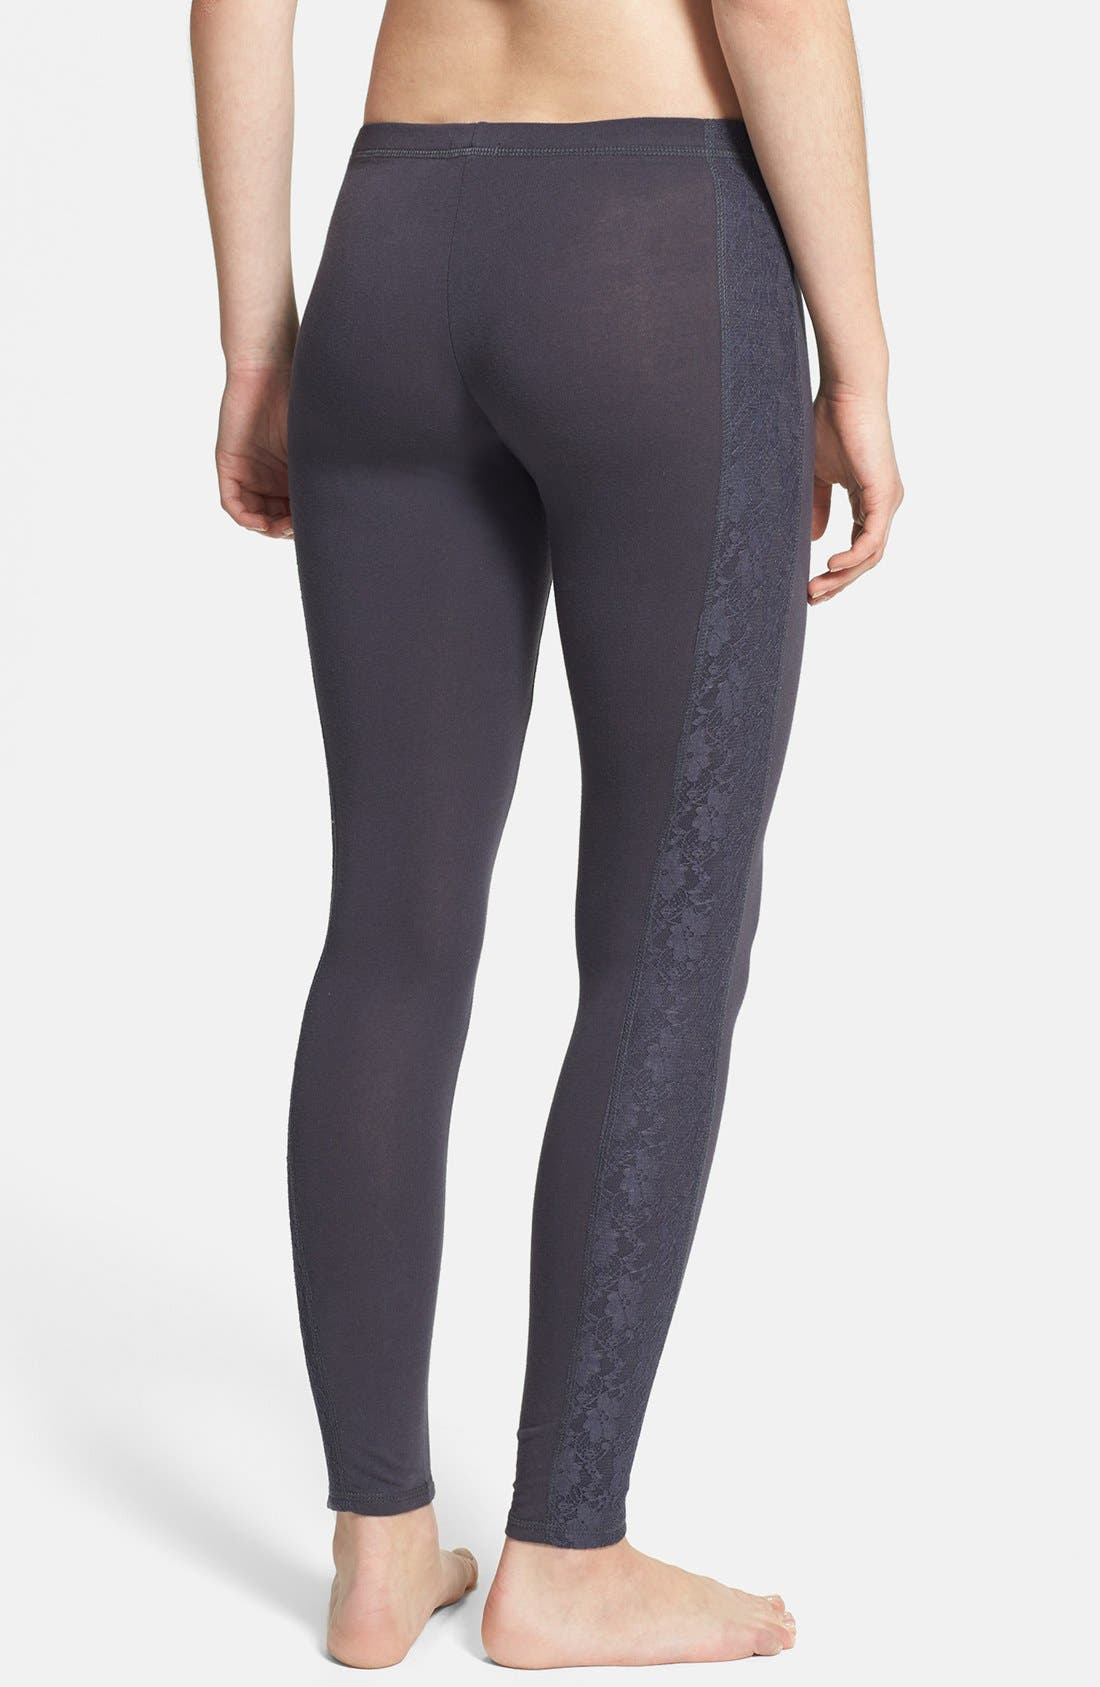 Alternate Image 2  - COZY ZOE 'Heart Breaker' Lace Panel Leggings